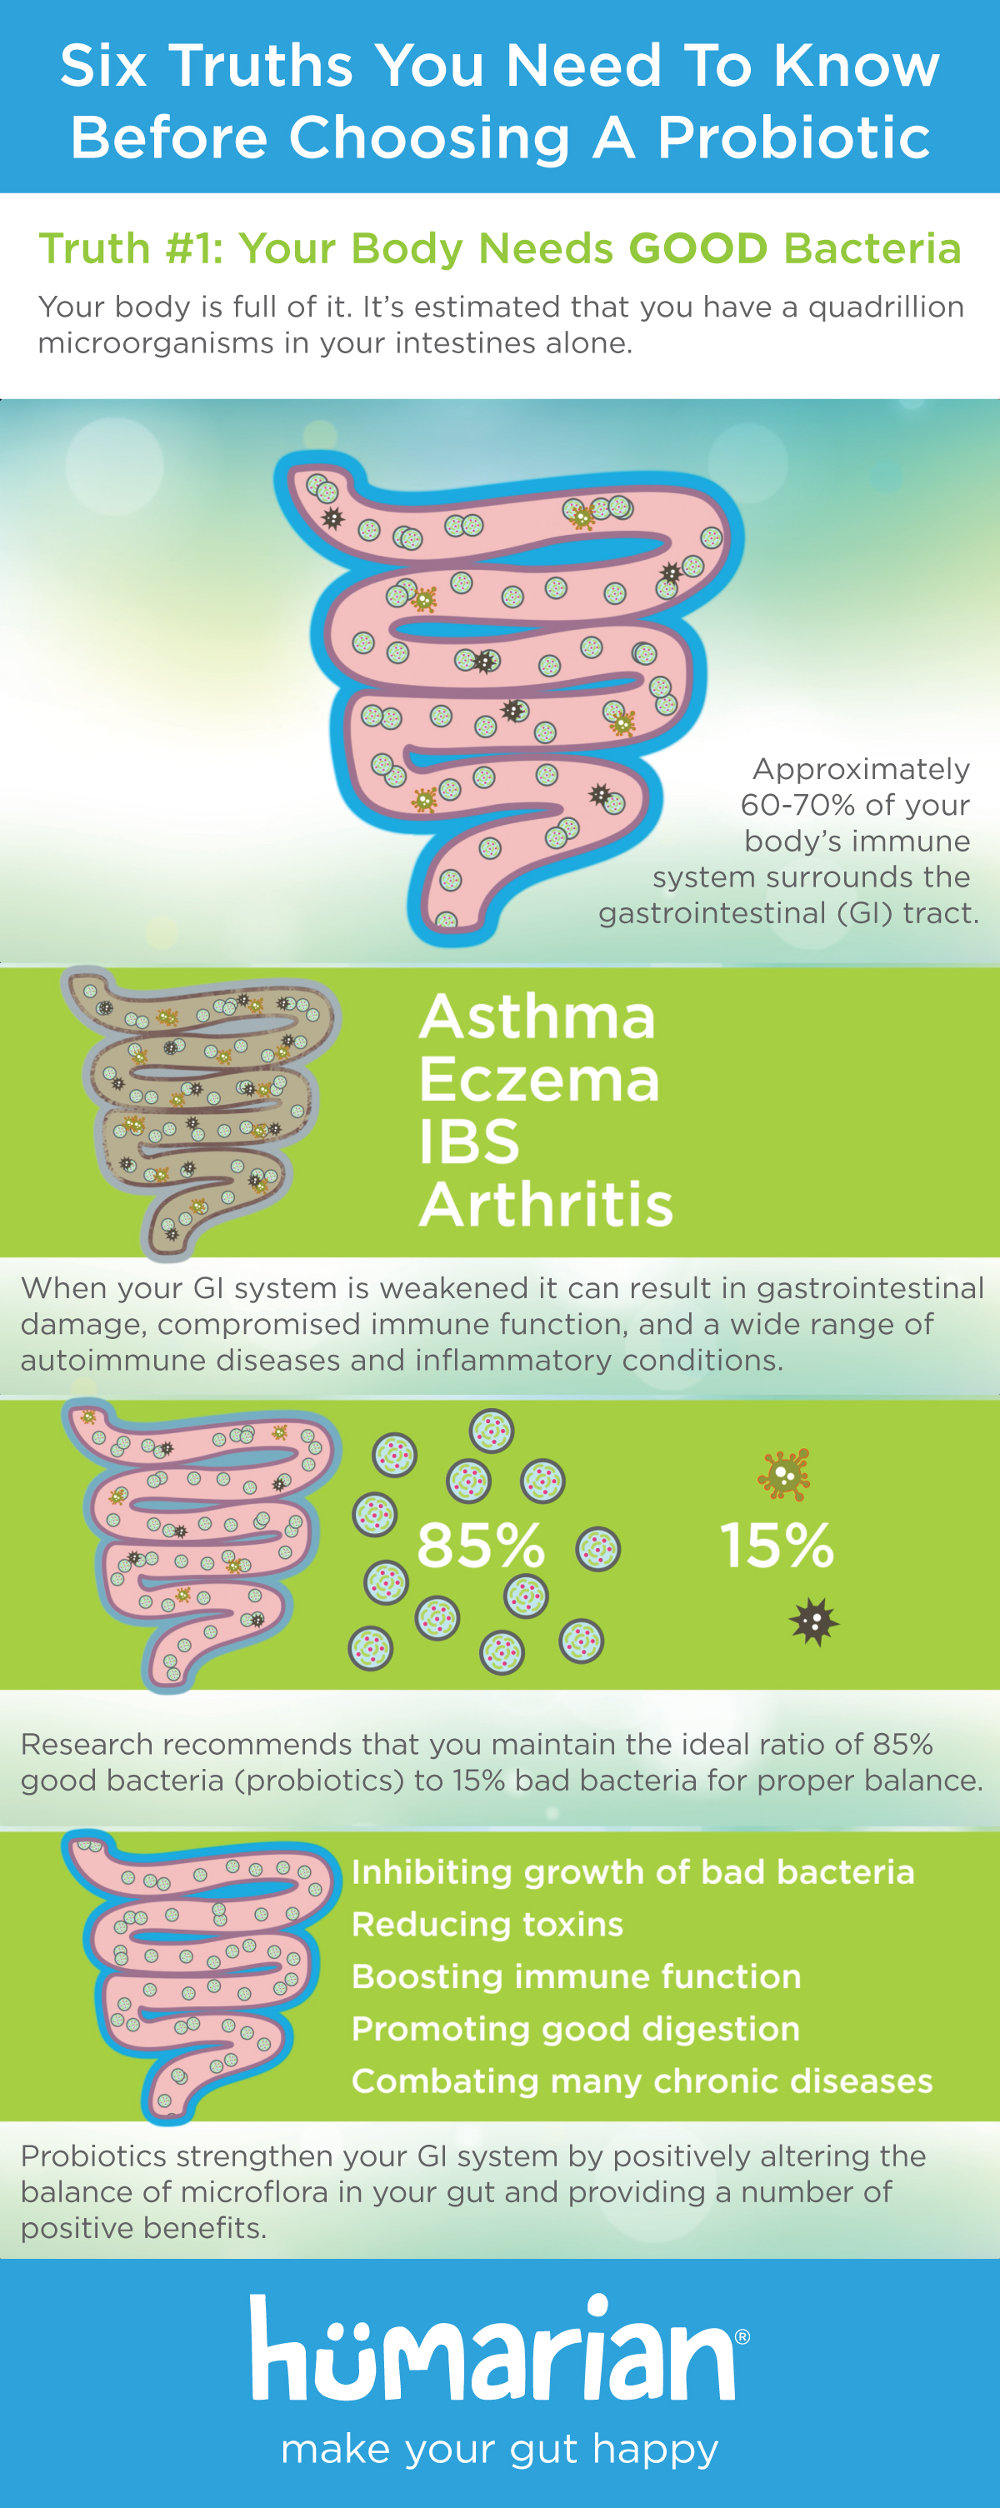 Infographic - Video Series - Truth #1: Your Body Needs Good Bacteria | The Six Truths You Need to Know Before Choosing a Probiotic | Humarian